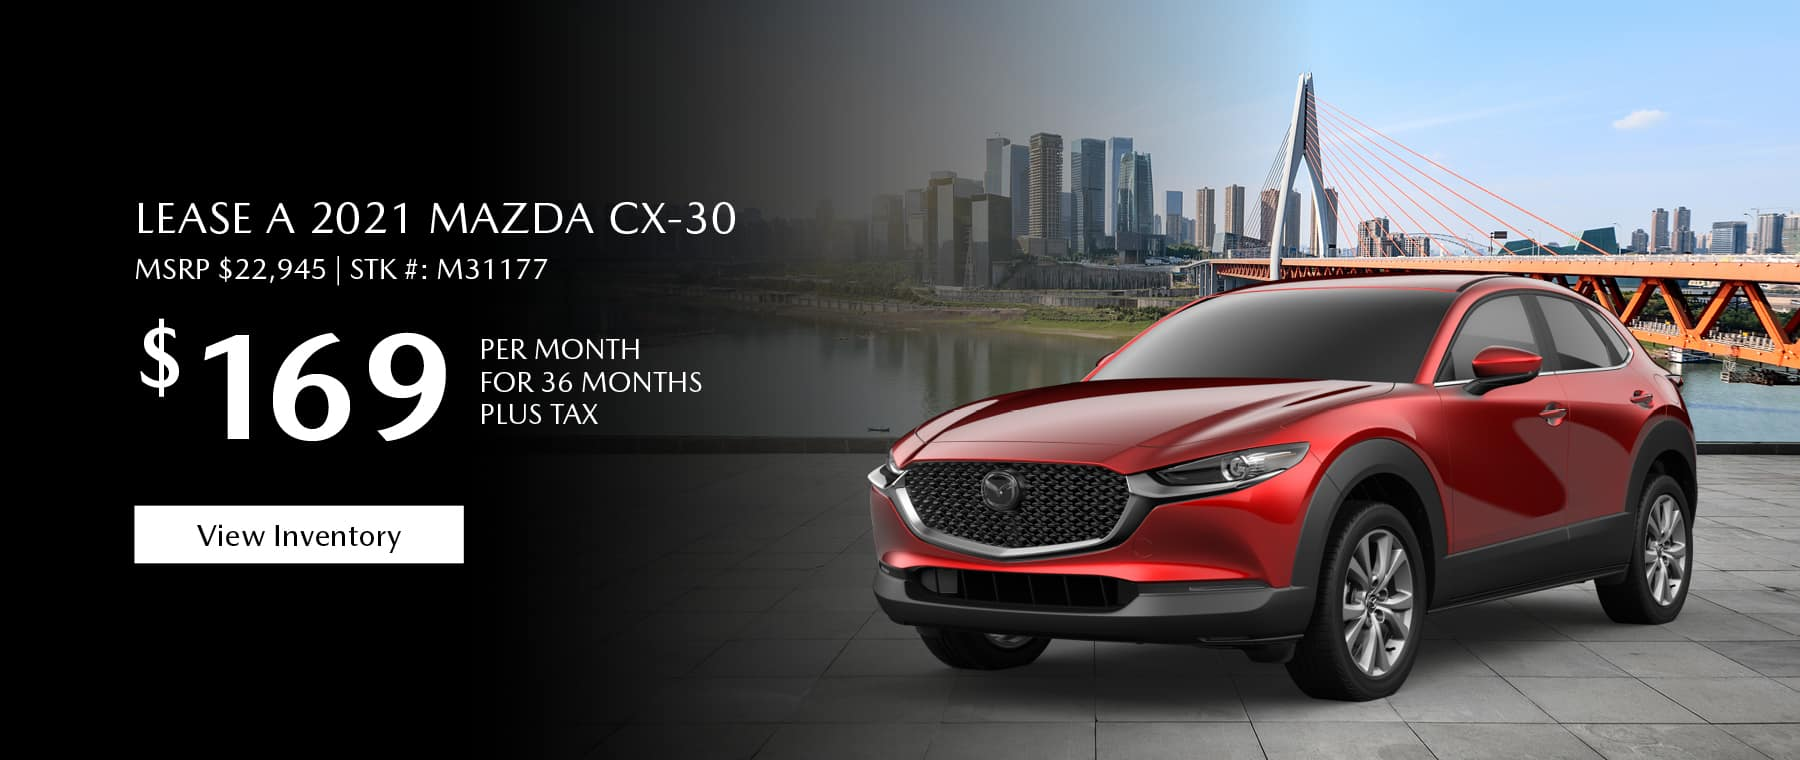 Lease the 2021 Mazda CX-30 for $169 per month, plus tax for 36 months. Click or tap here to view our inventory.